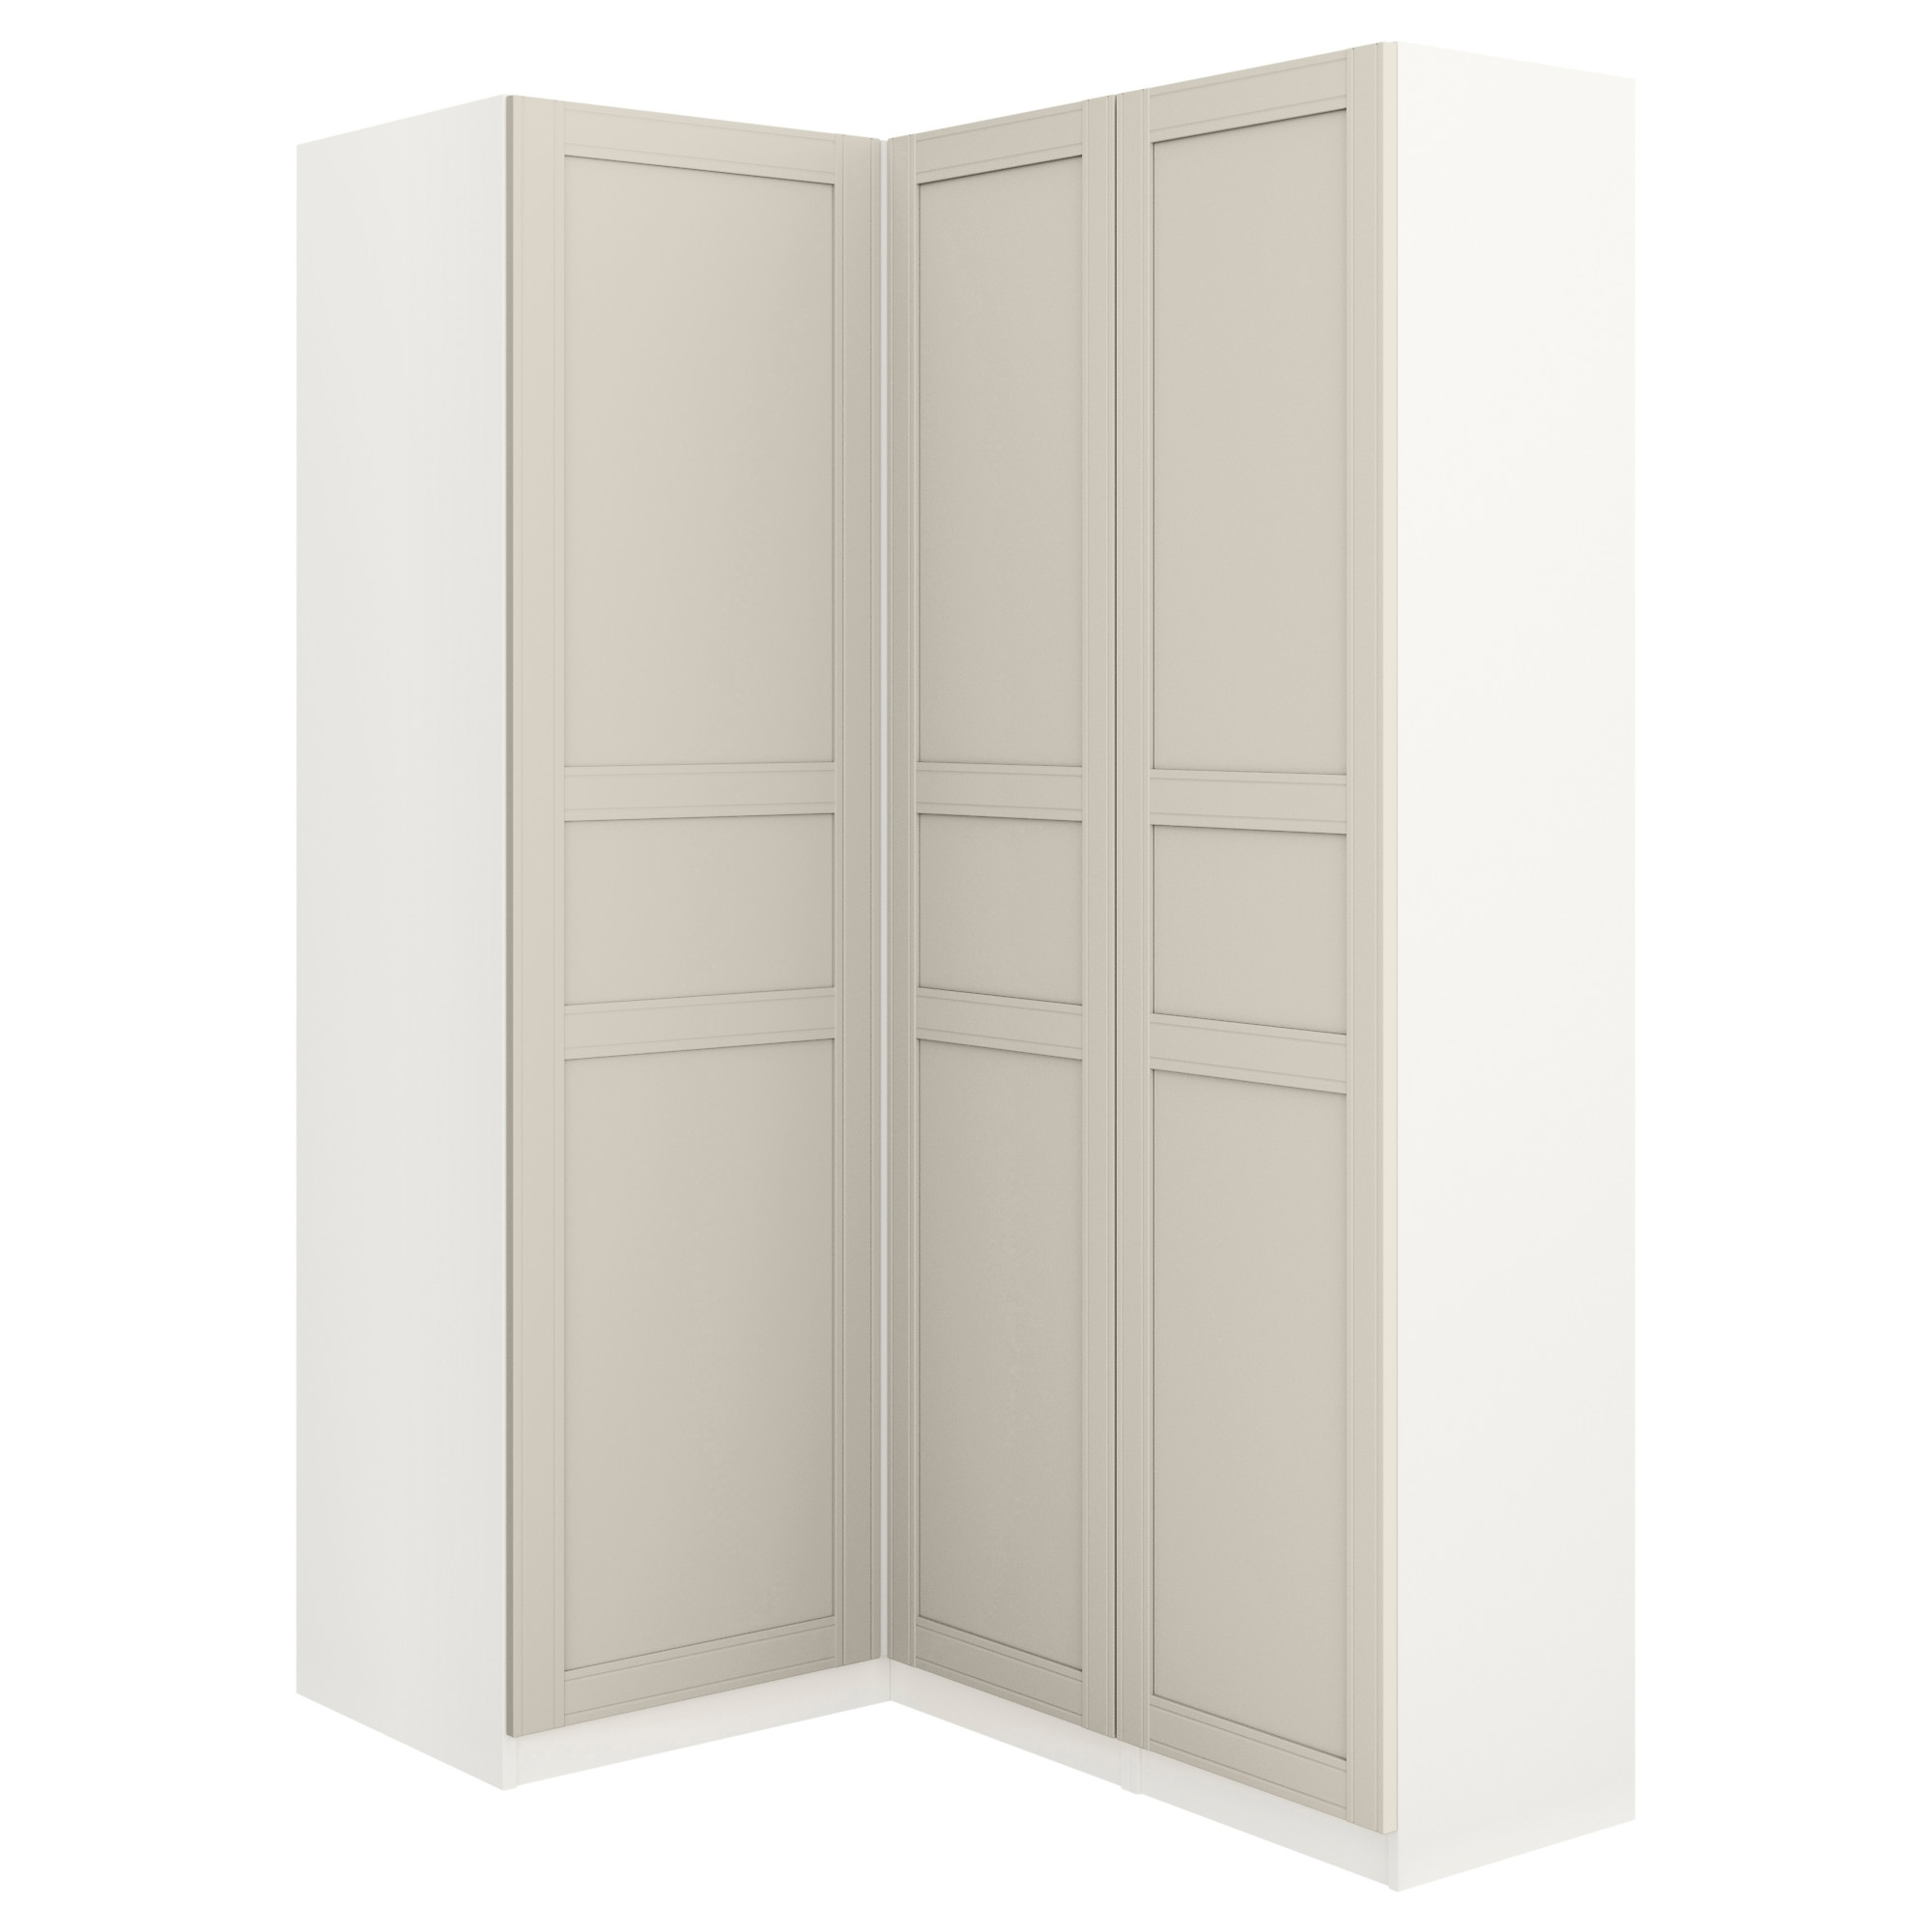 Newest White Corner Wardrobes Units Intended For Pax Corner Wardrobe White/flisberget Light Beige 160/88X201 Cm – Ikea (View 7 of 15)